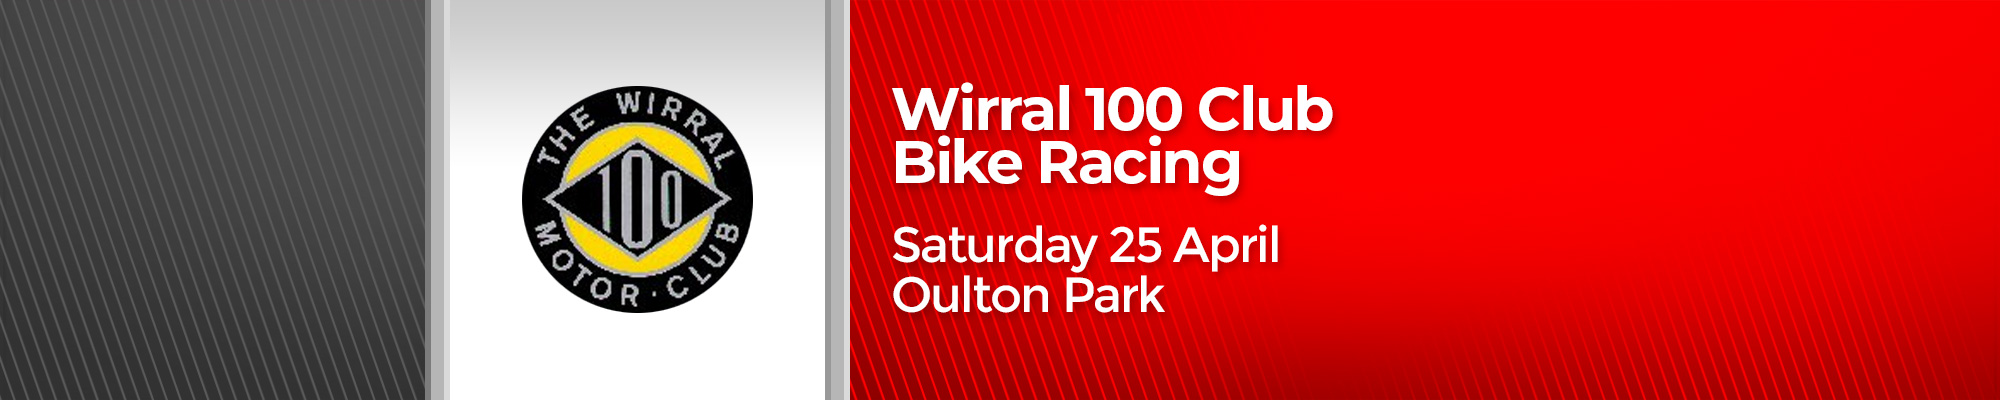 Wirral 100 Club Bike Championships - POSTPONED